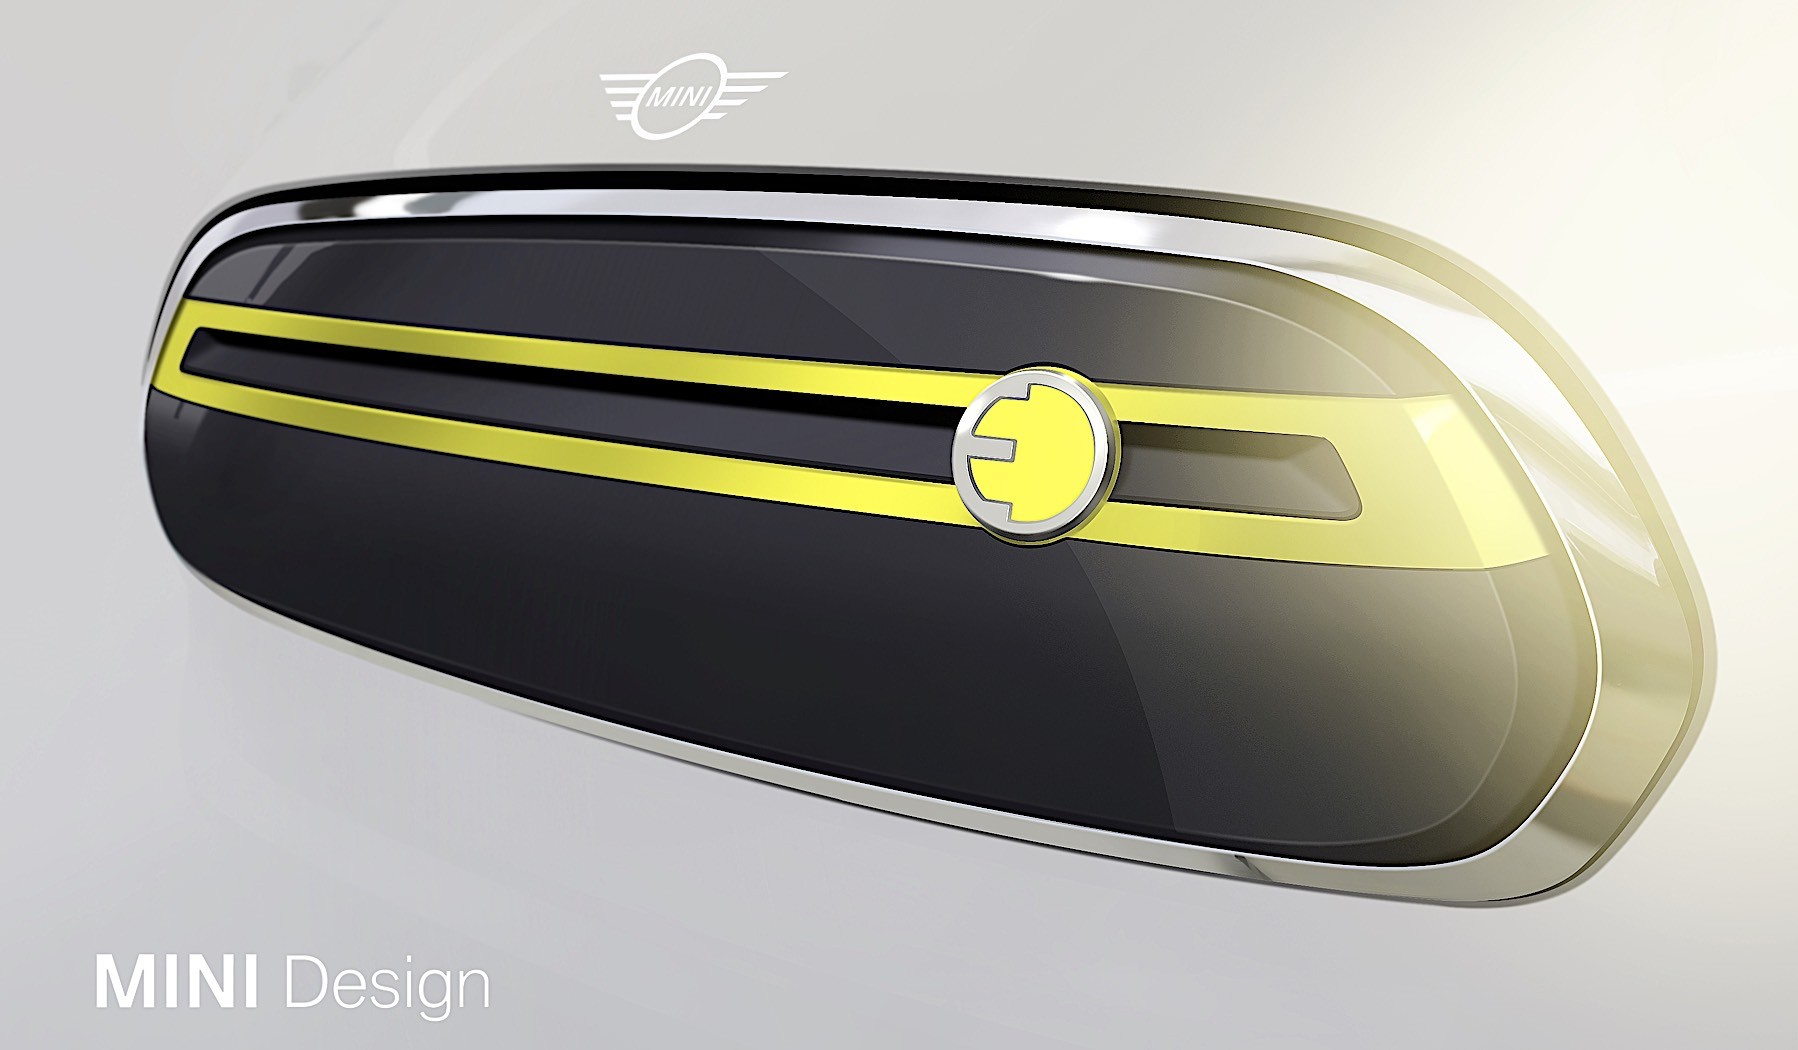 MINI teases design sketches for production EV